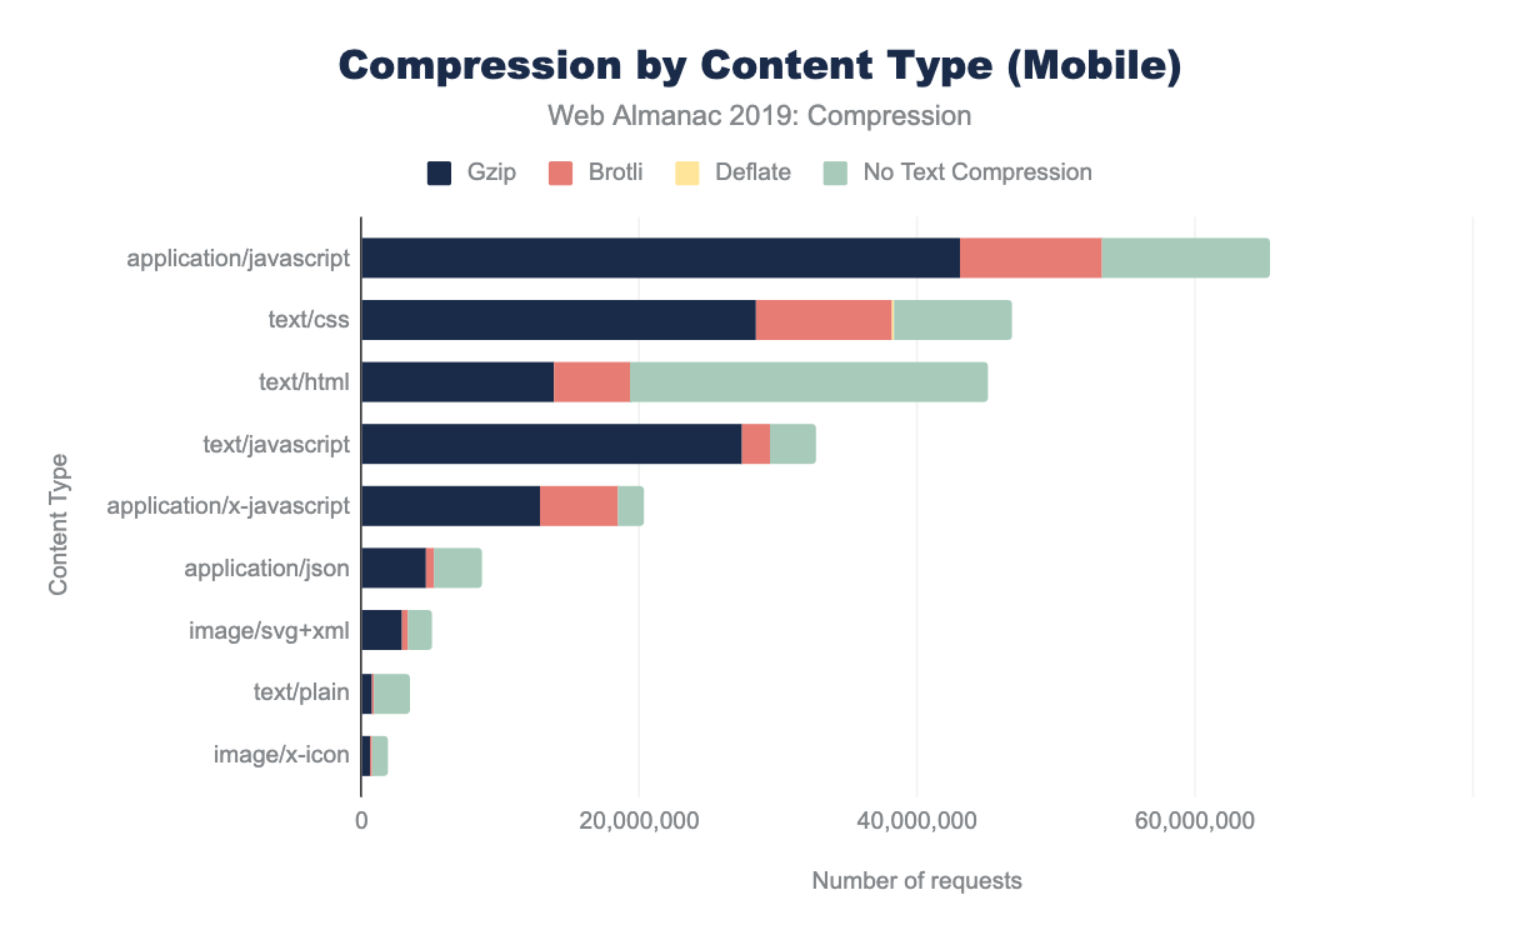 Compression by content type for mobile.